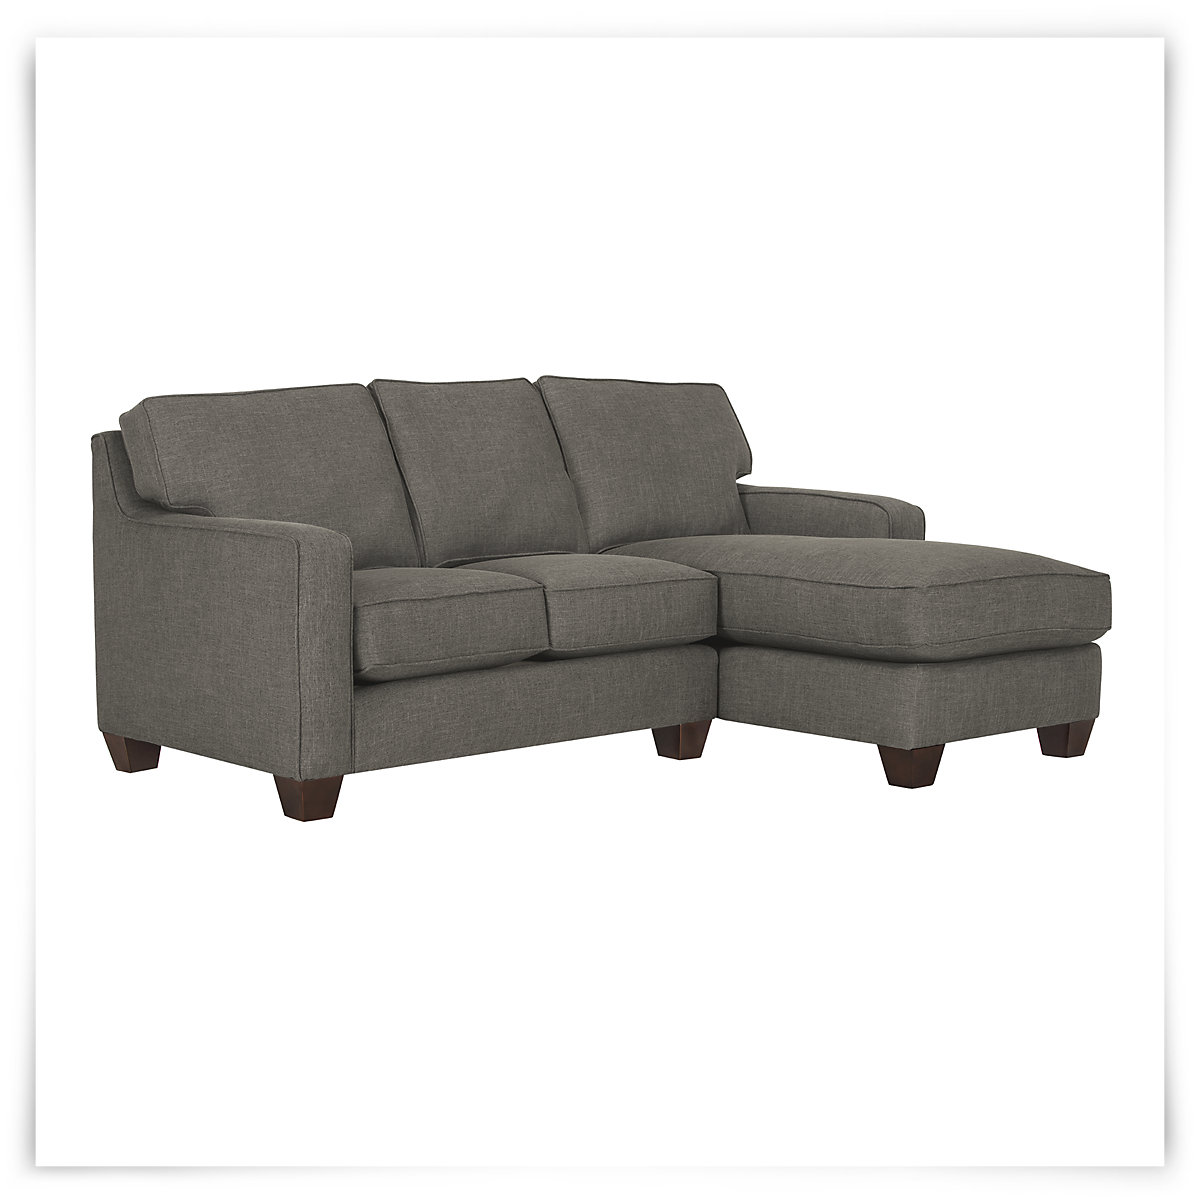 City furniture york dk gray fabric small right chaise for Chaise york